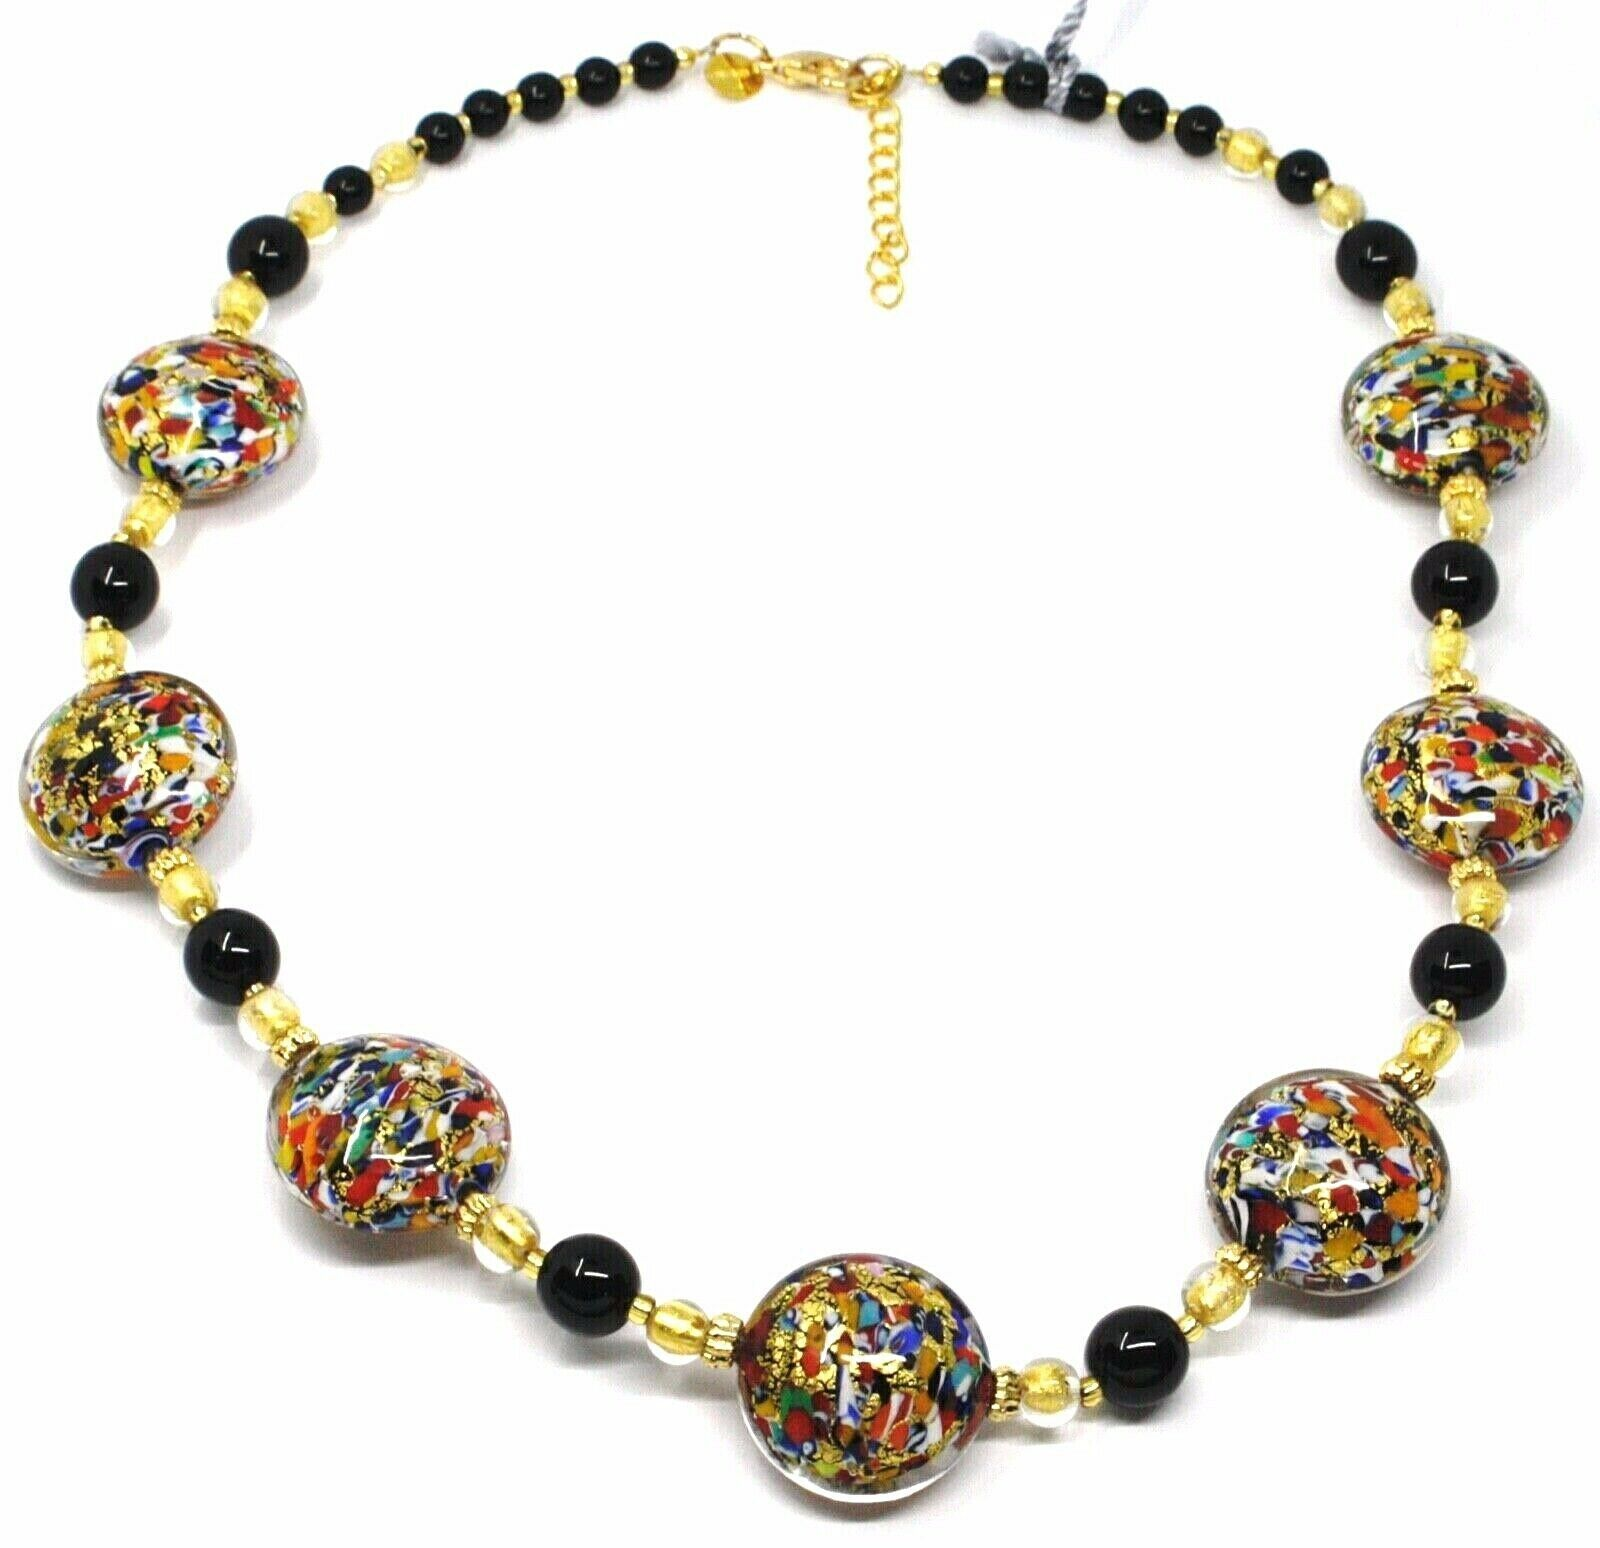 NECKLACE MACULATE MULTI COLOR MURANO GLASS BIG DISCS, GOLD LEAF, ITALY MADE